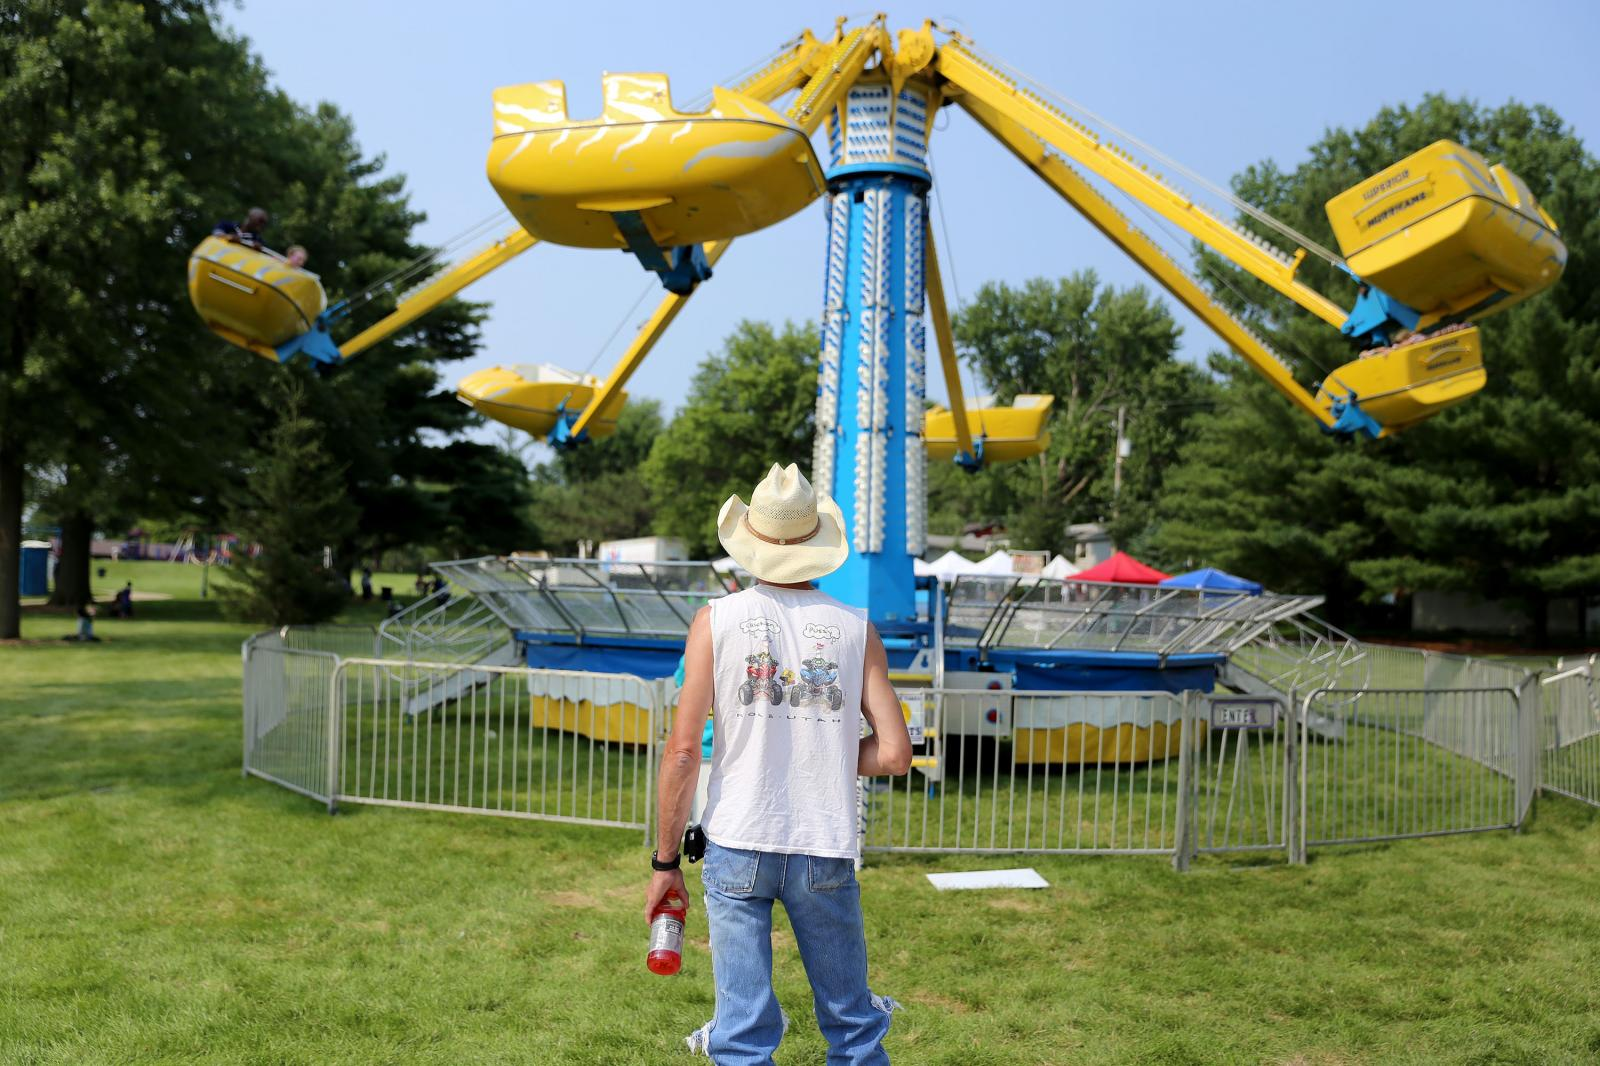 Rick Muller, of Iowa City, waits for his daughters and nephew to finish riding a carnival ride at the Coralville 4thFest at S.T. Morrison Park on Friday, July 3, 2015. (KC McGinnis / The Gazette)